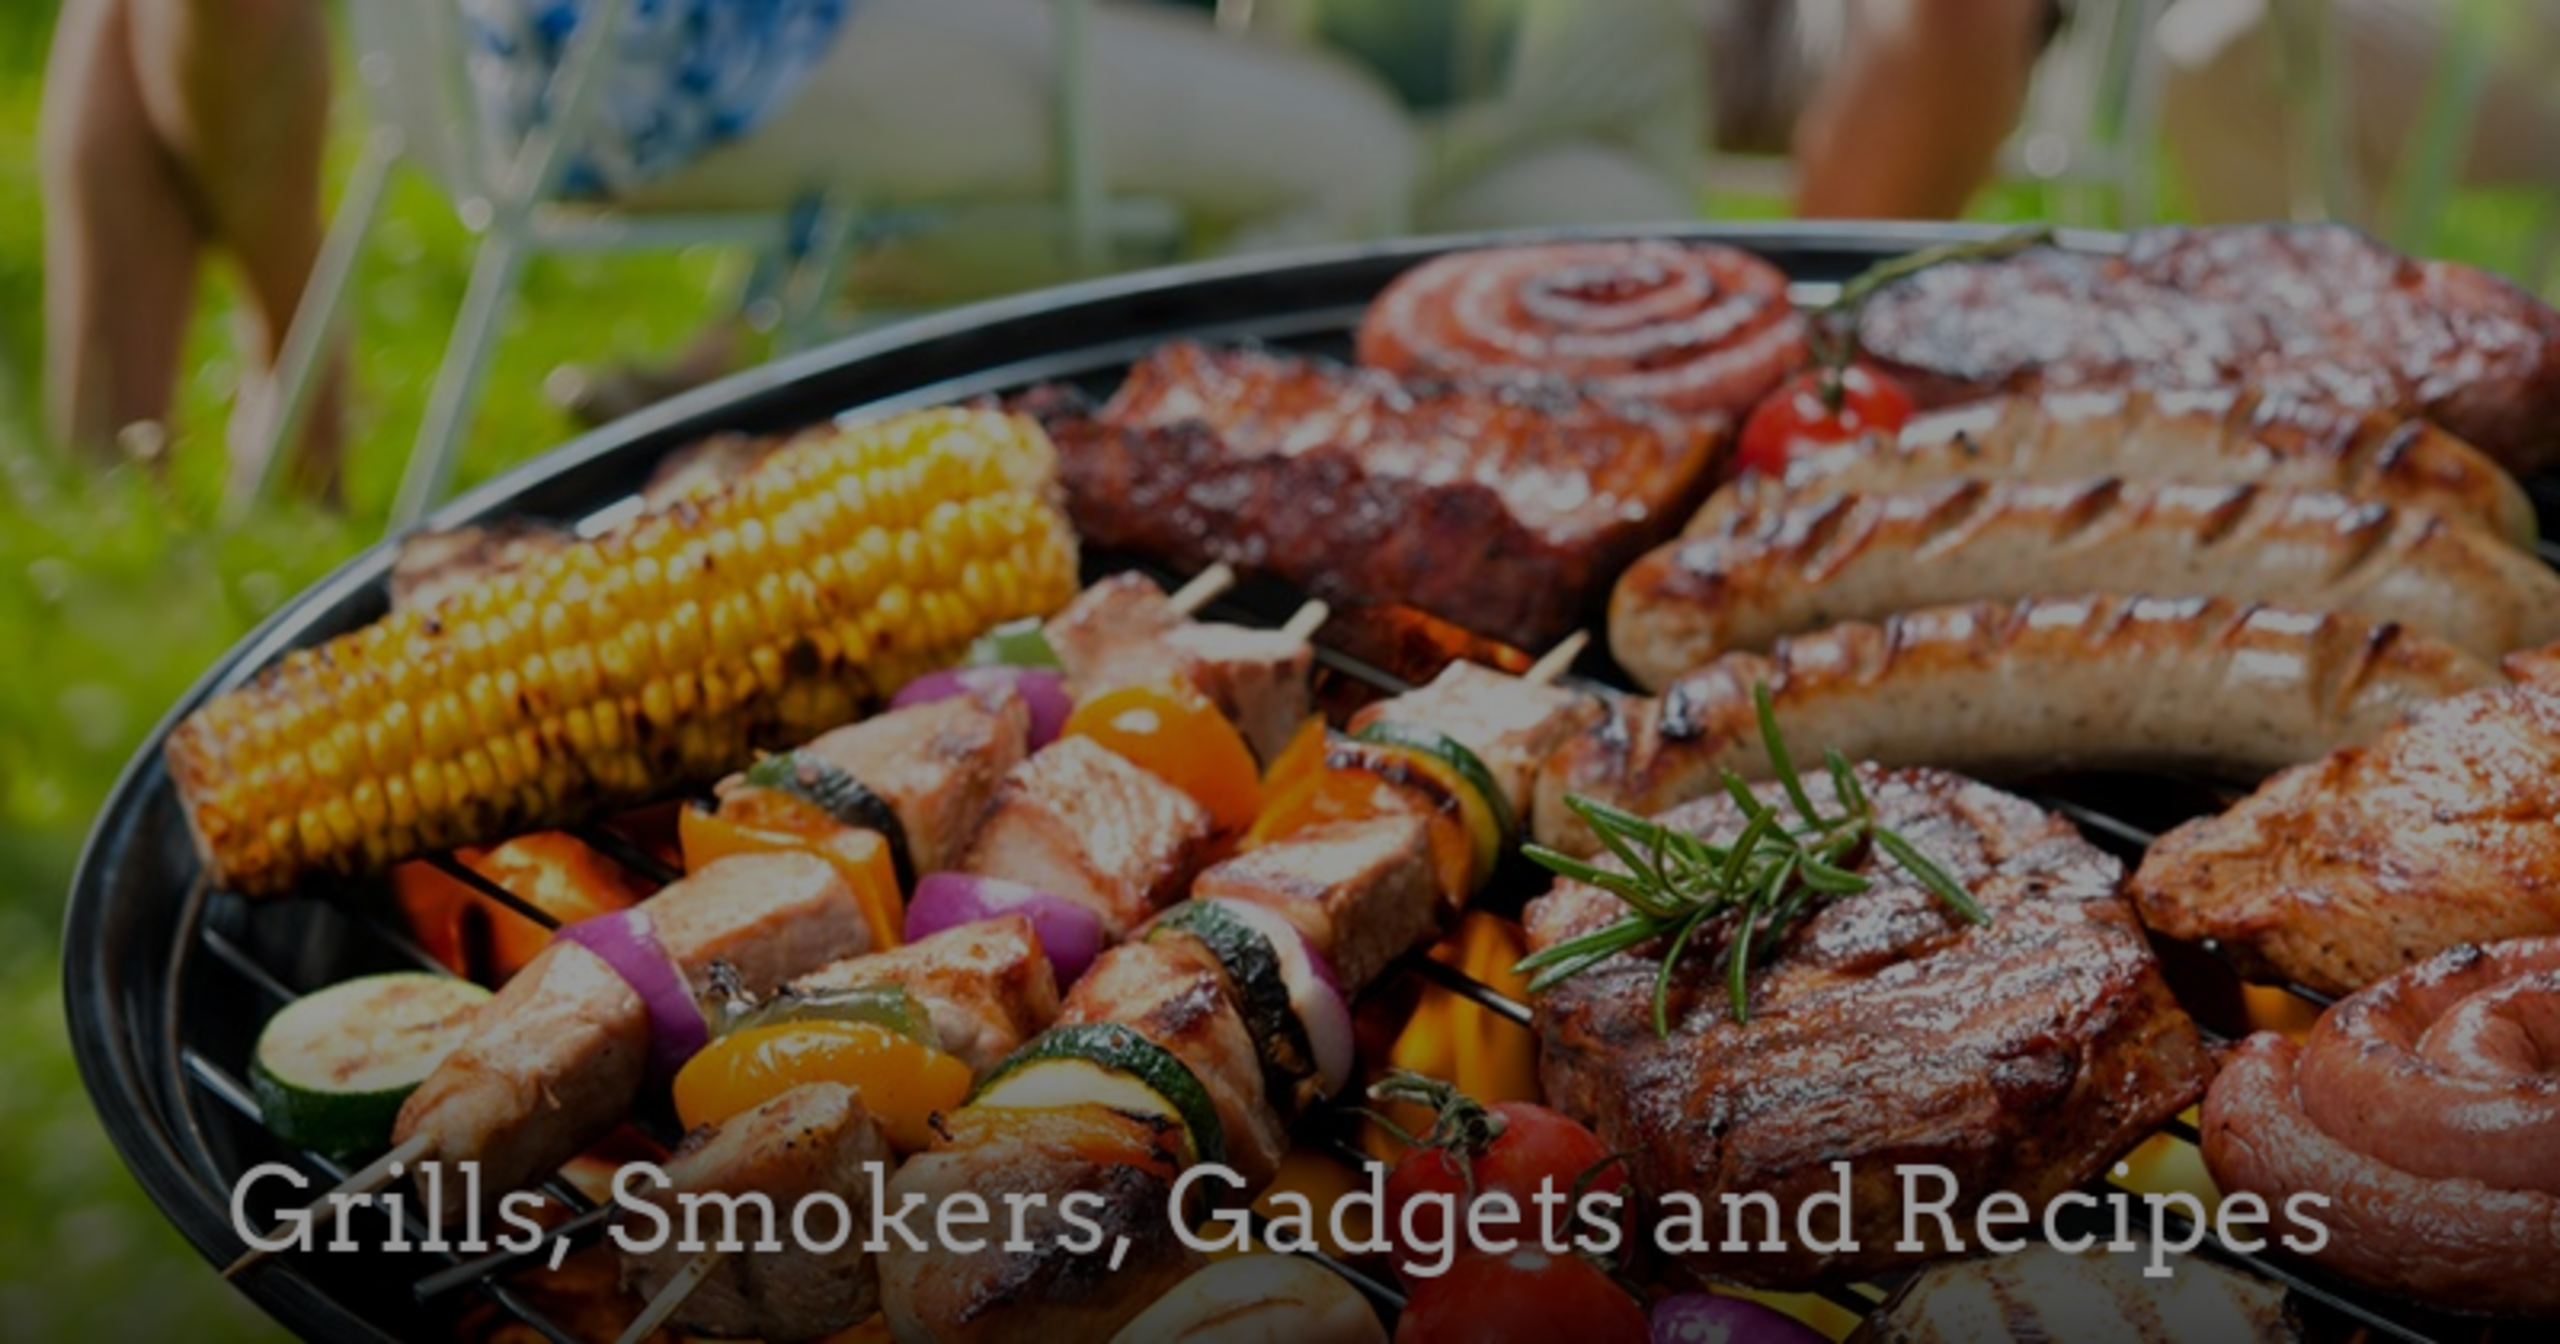 Grills, Smokers, Gadgets, and Recipes